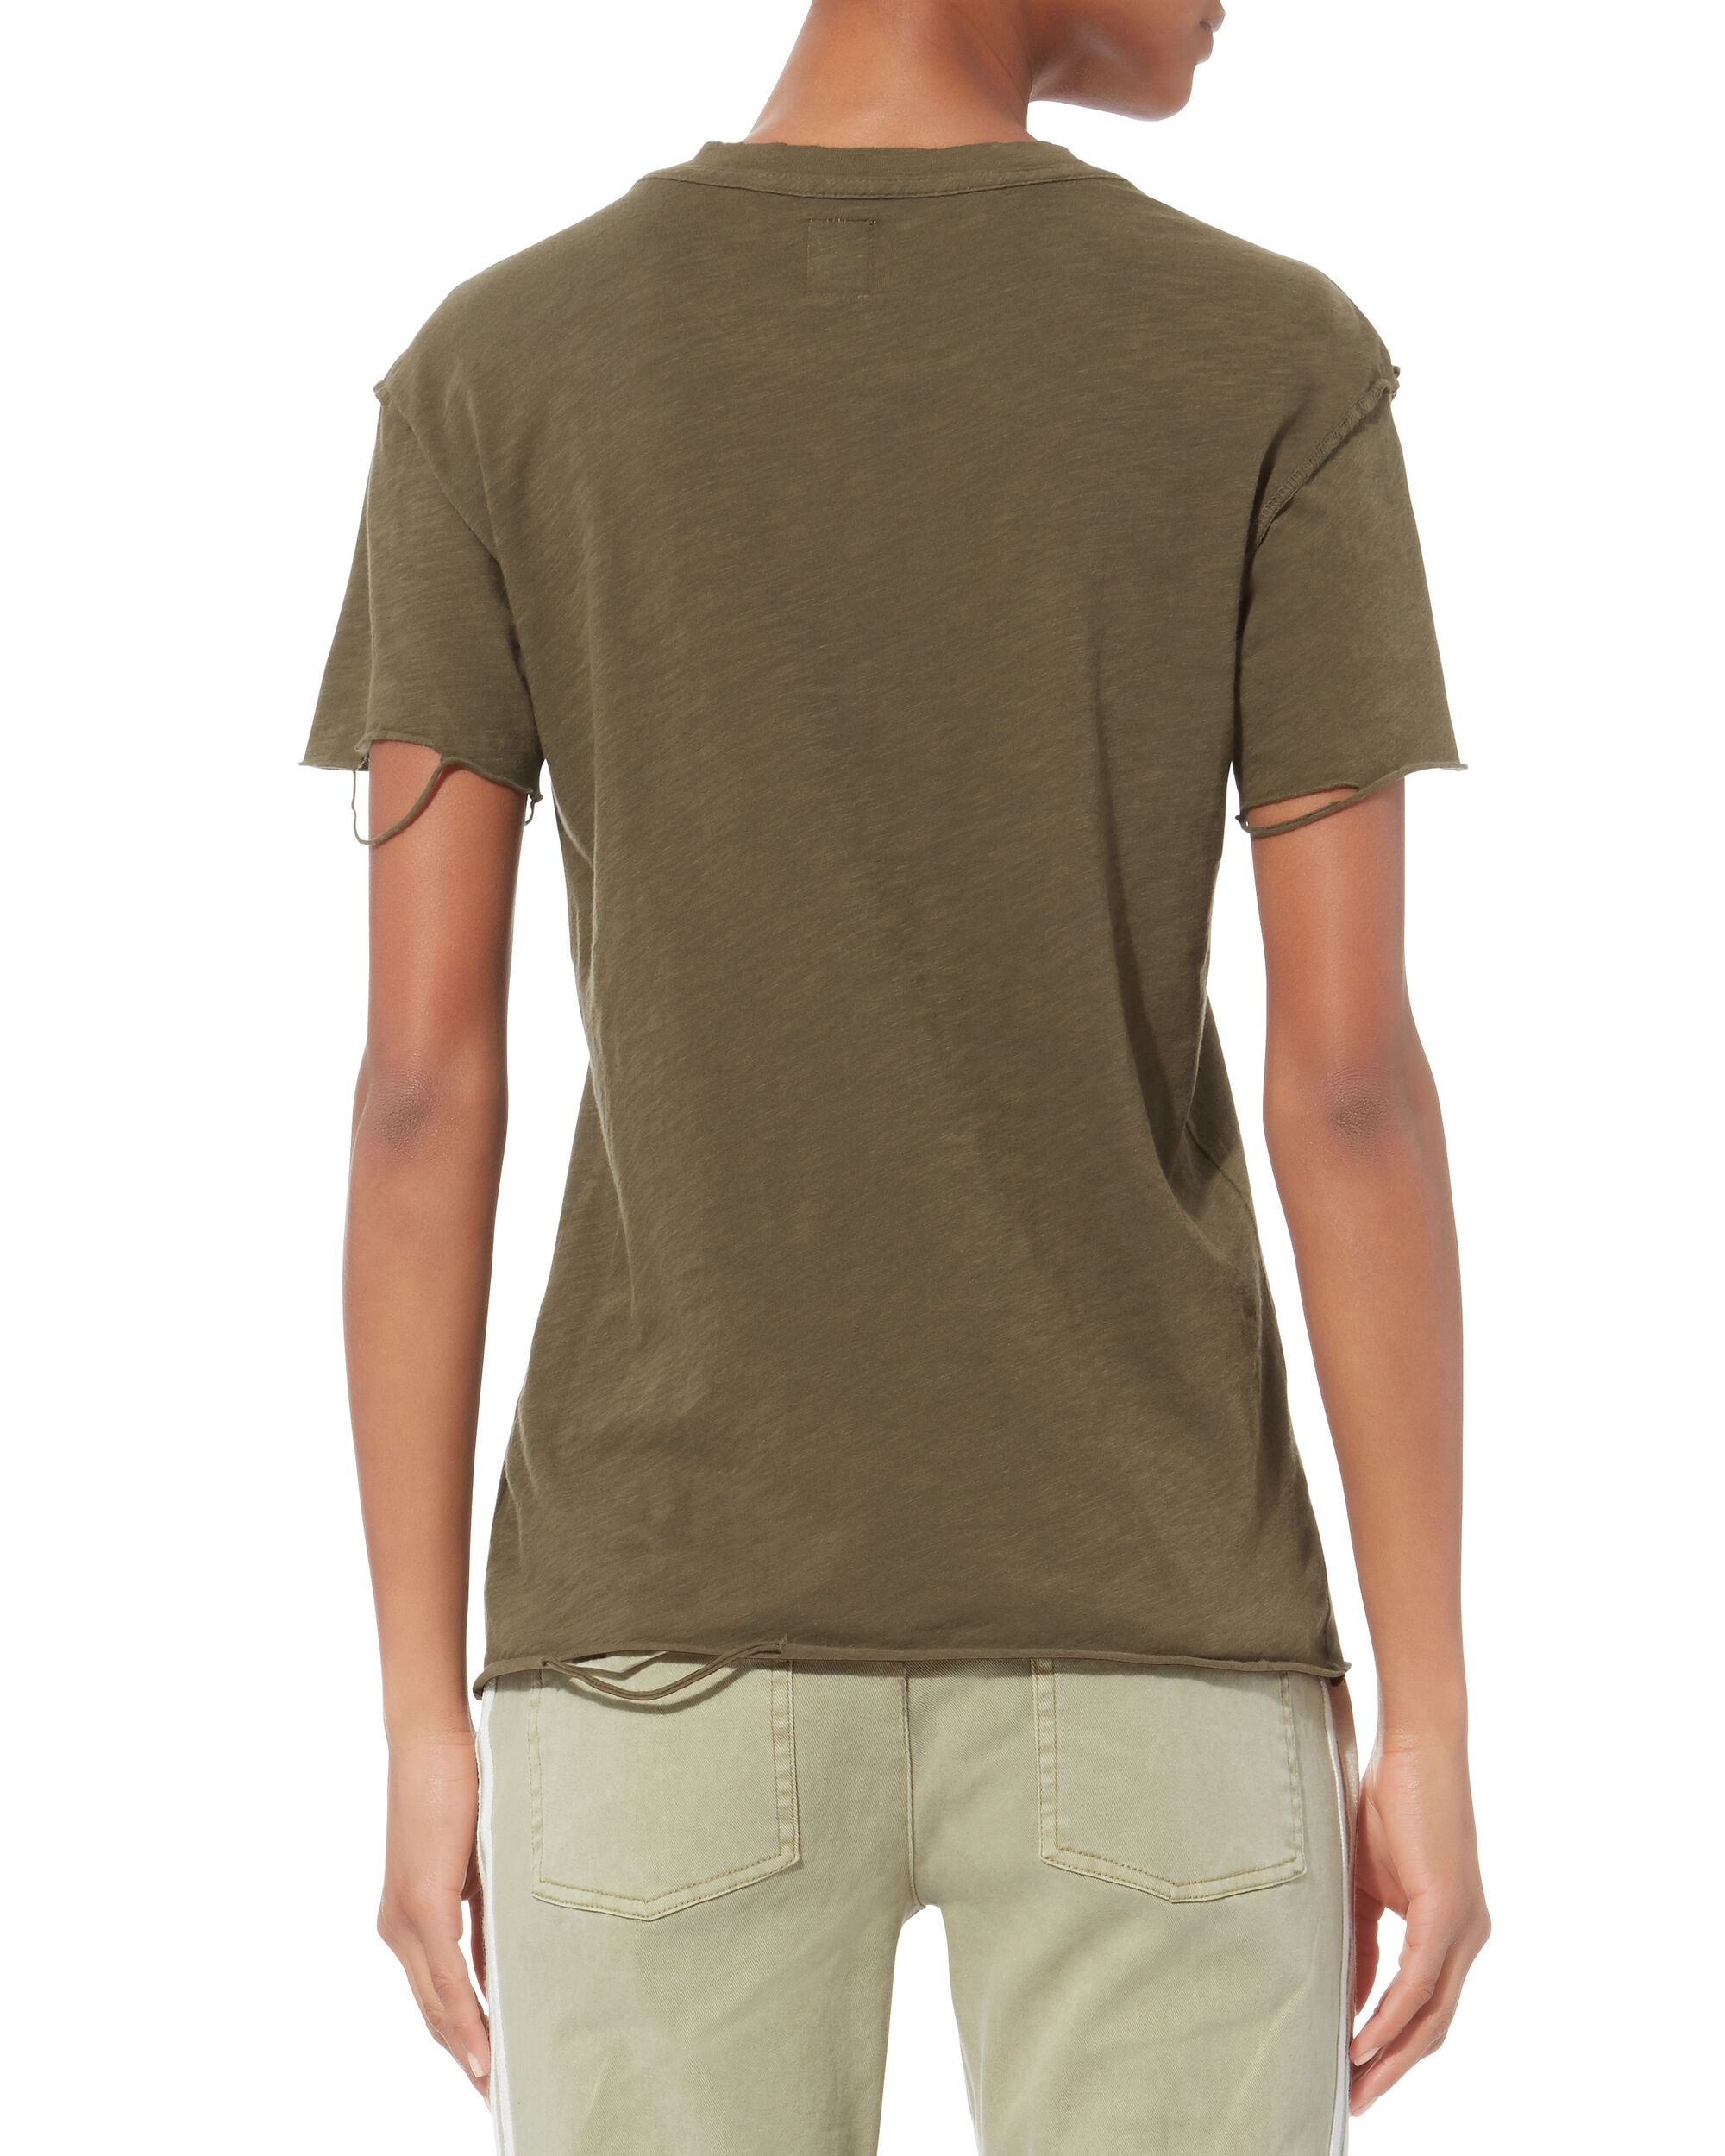 Moore Army Tee, OLIVE/ARMY, hi-res